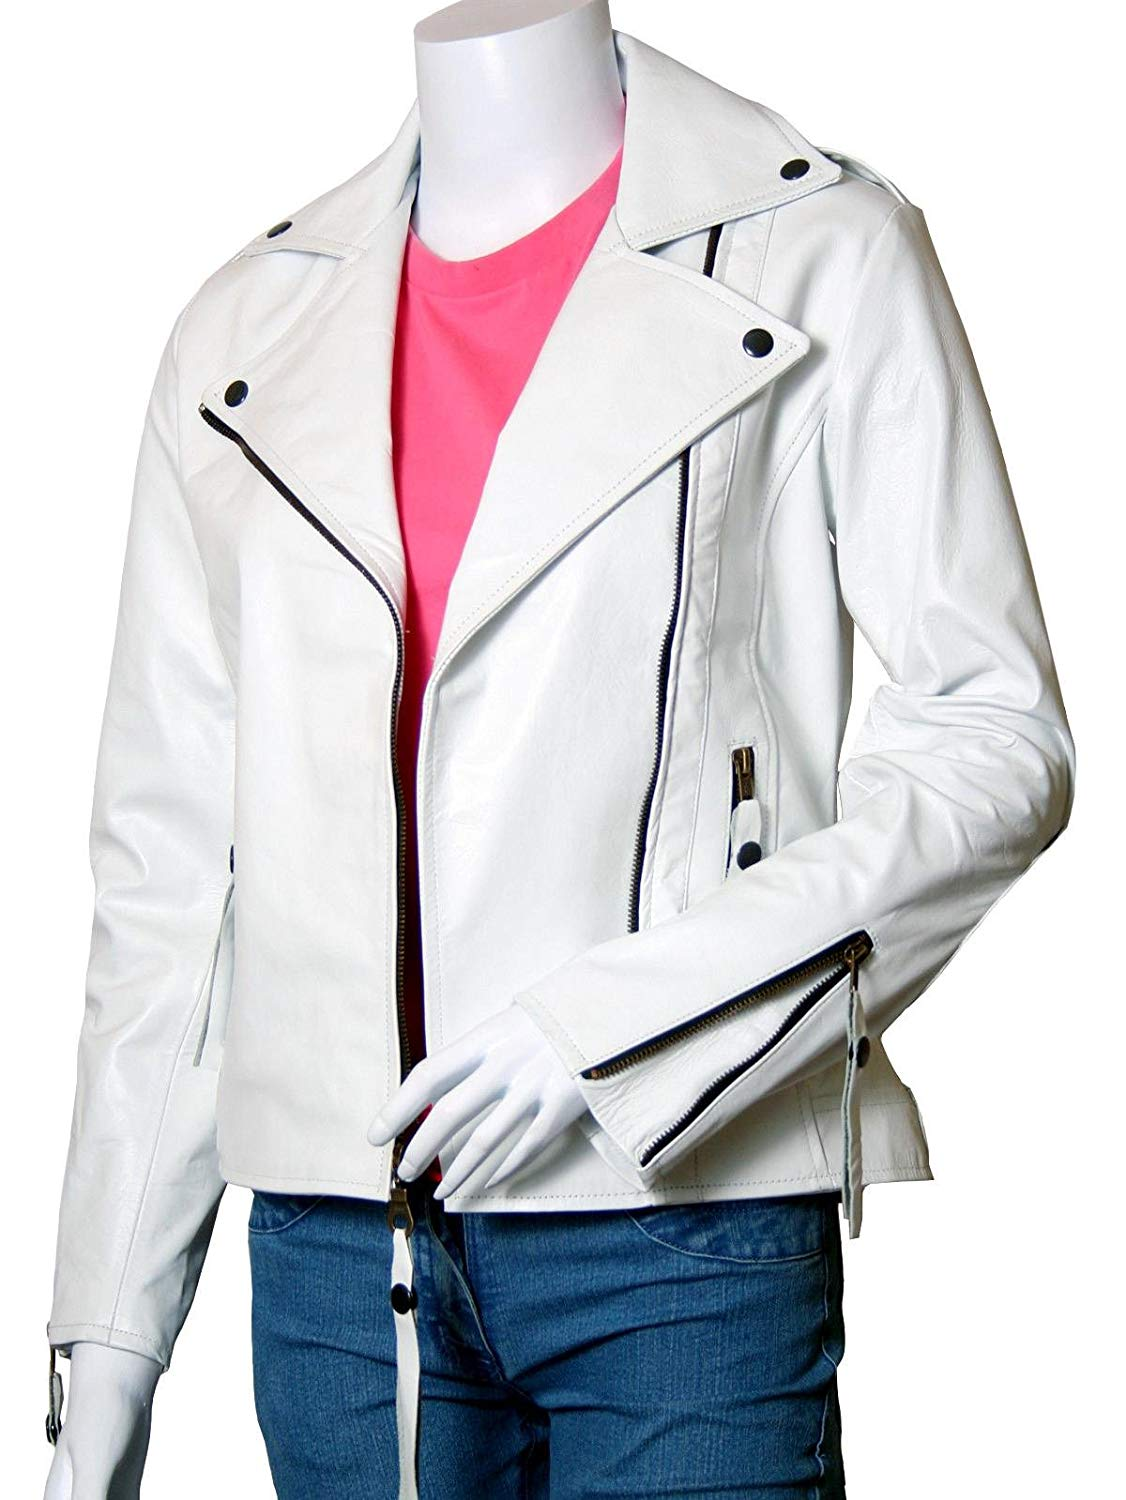 Xport Designs Real Leather Size Medium Biker White Jacket for Women